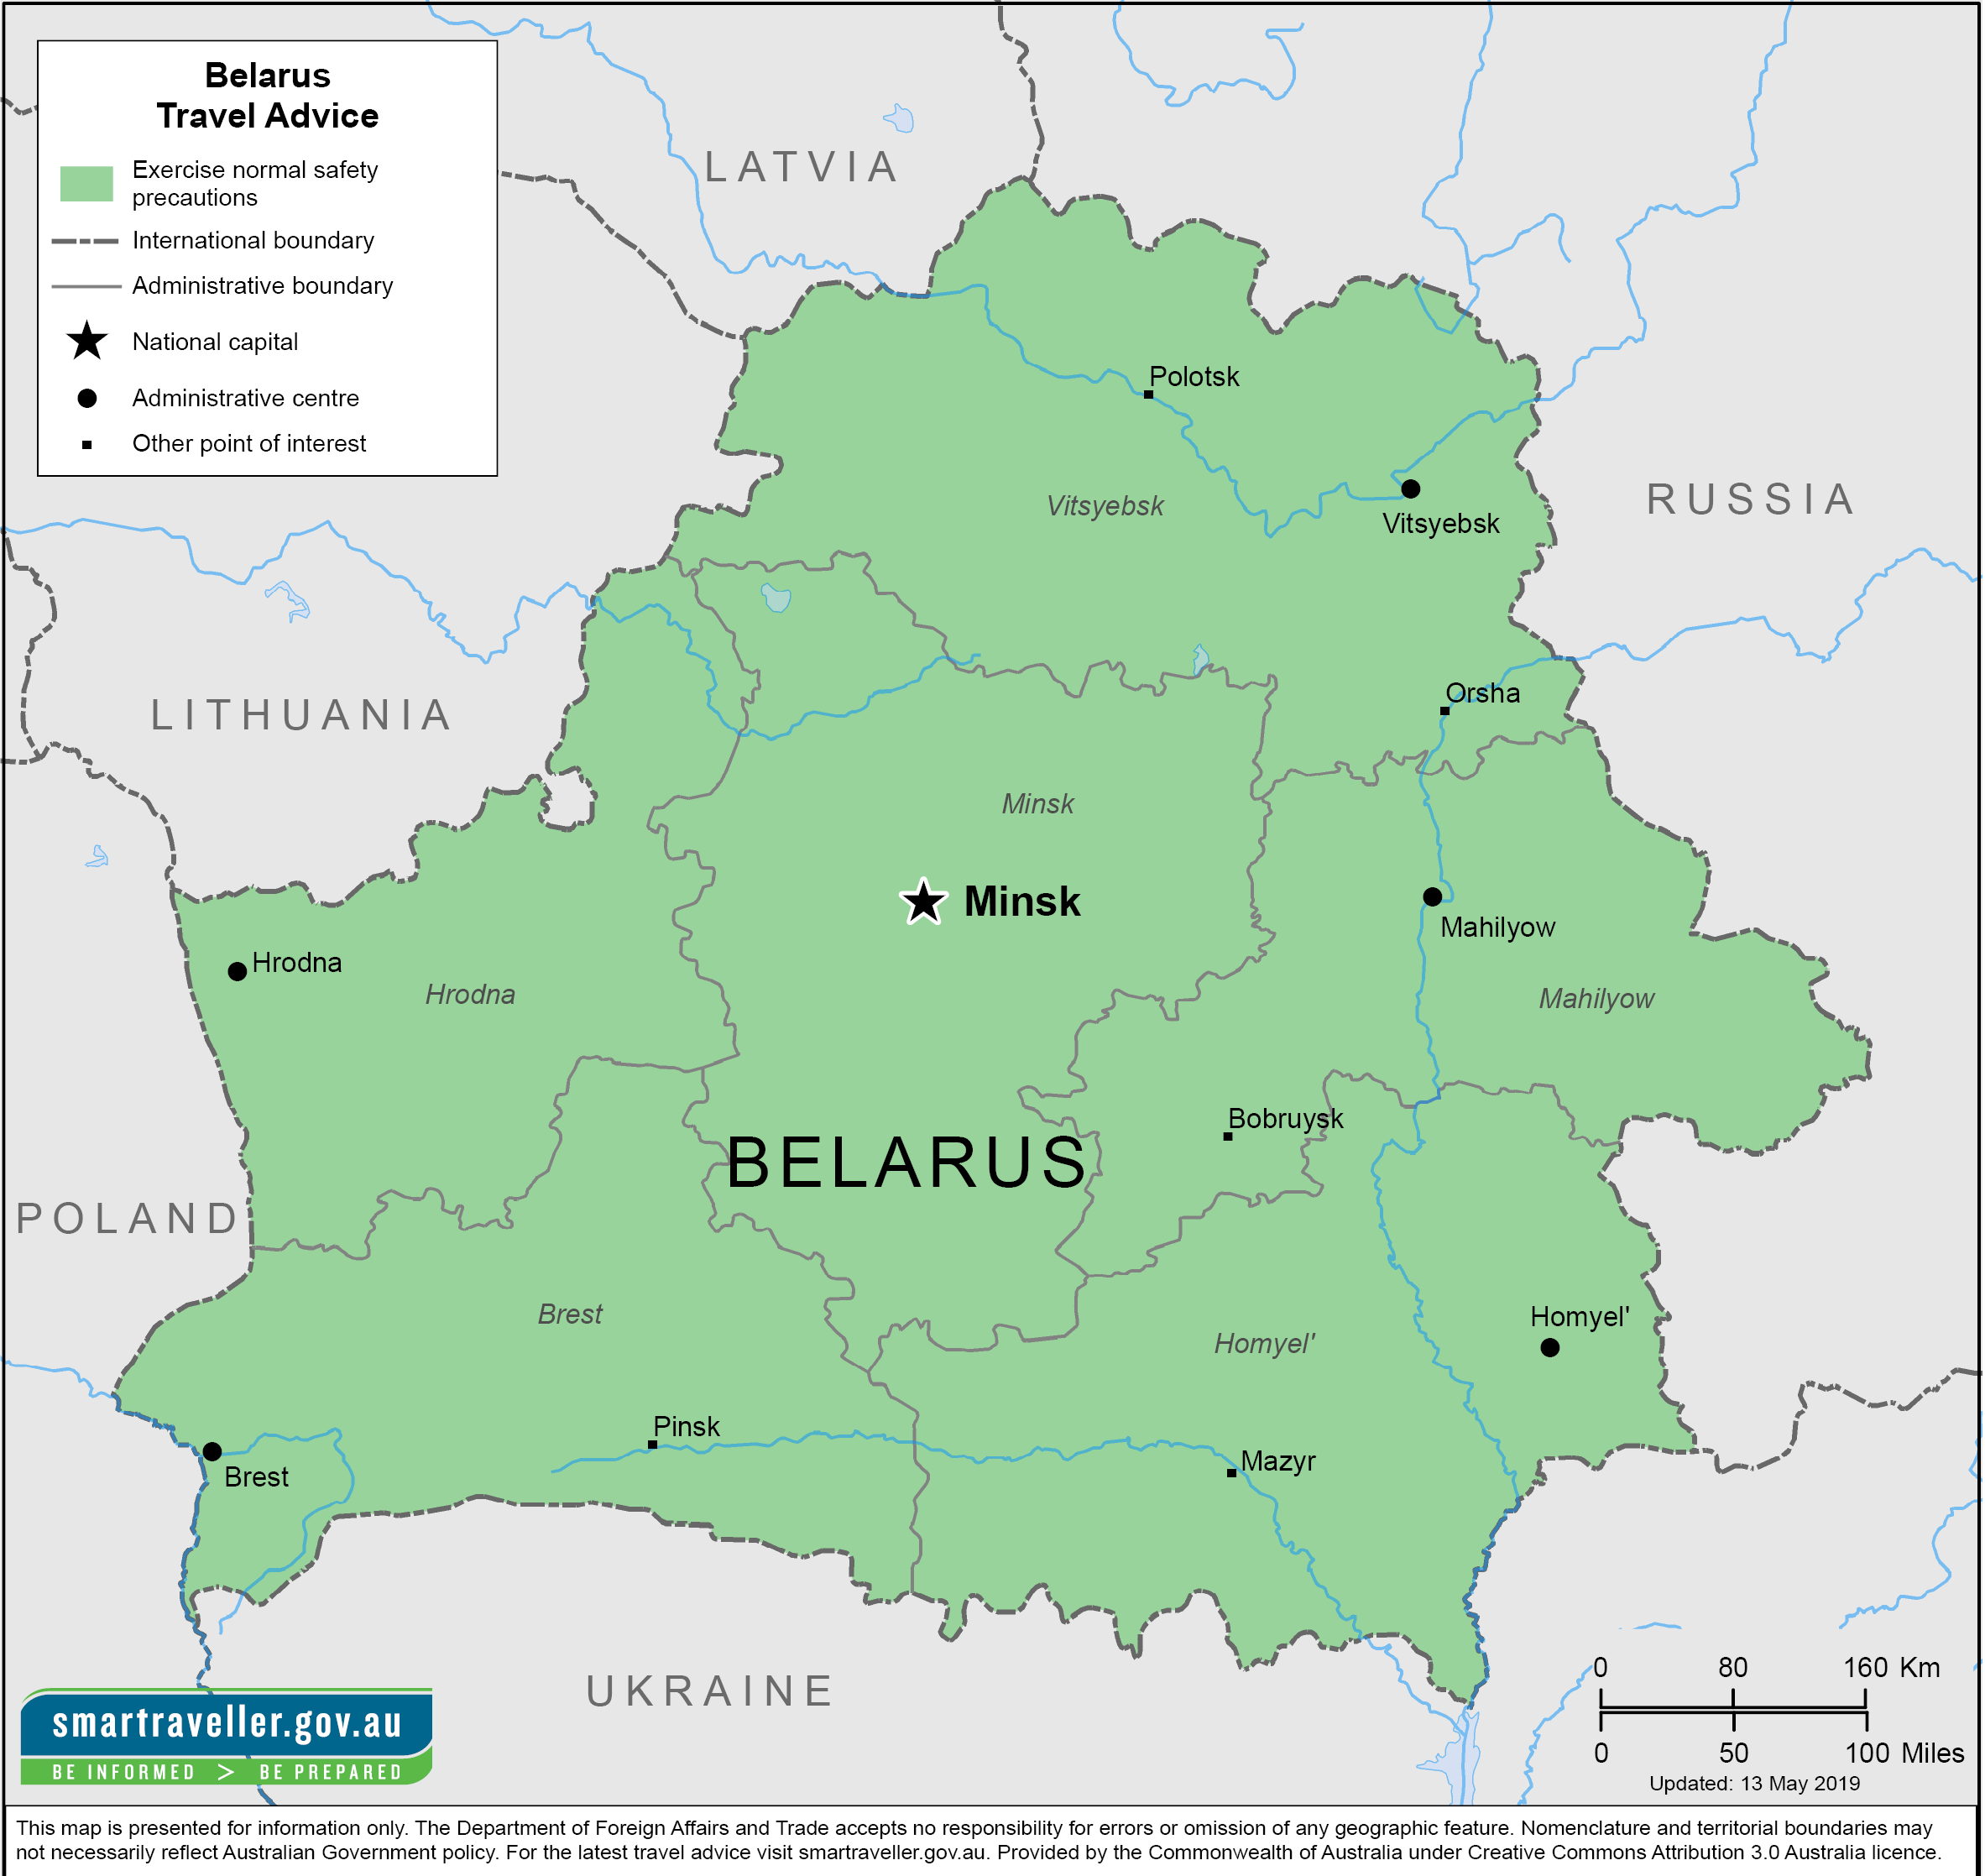 Belarus Traveler Information - Travel Advice